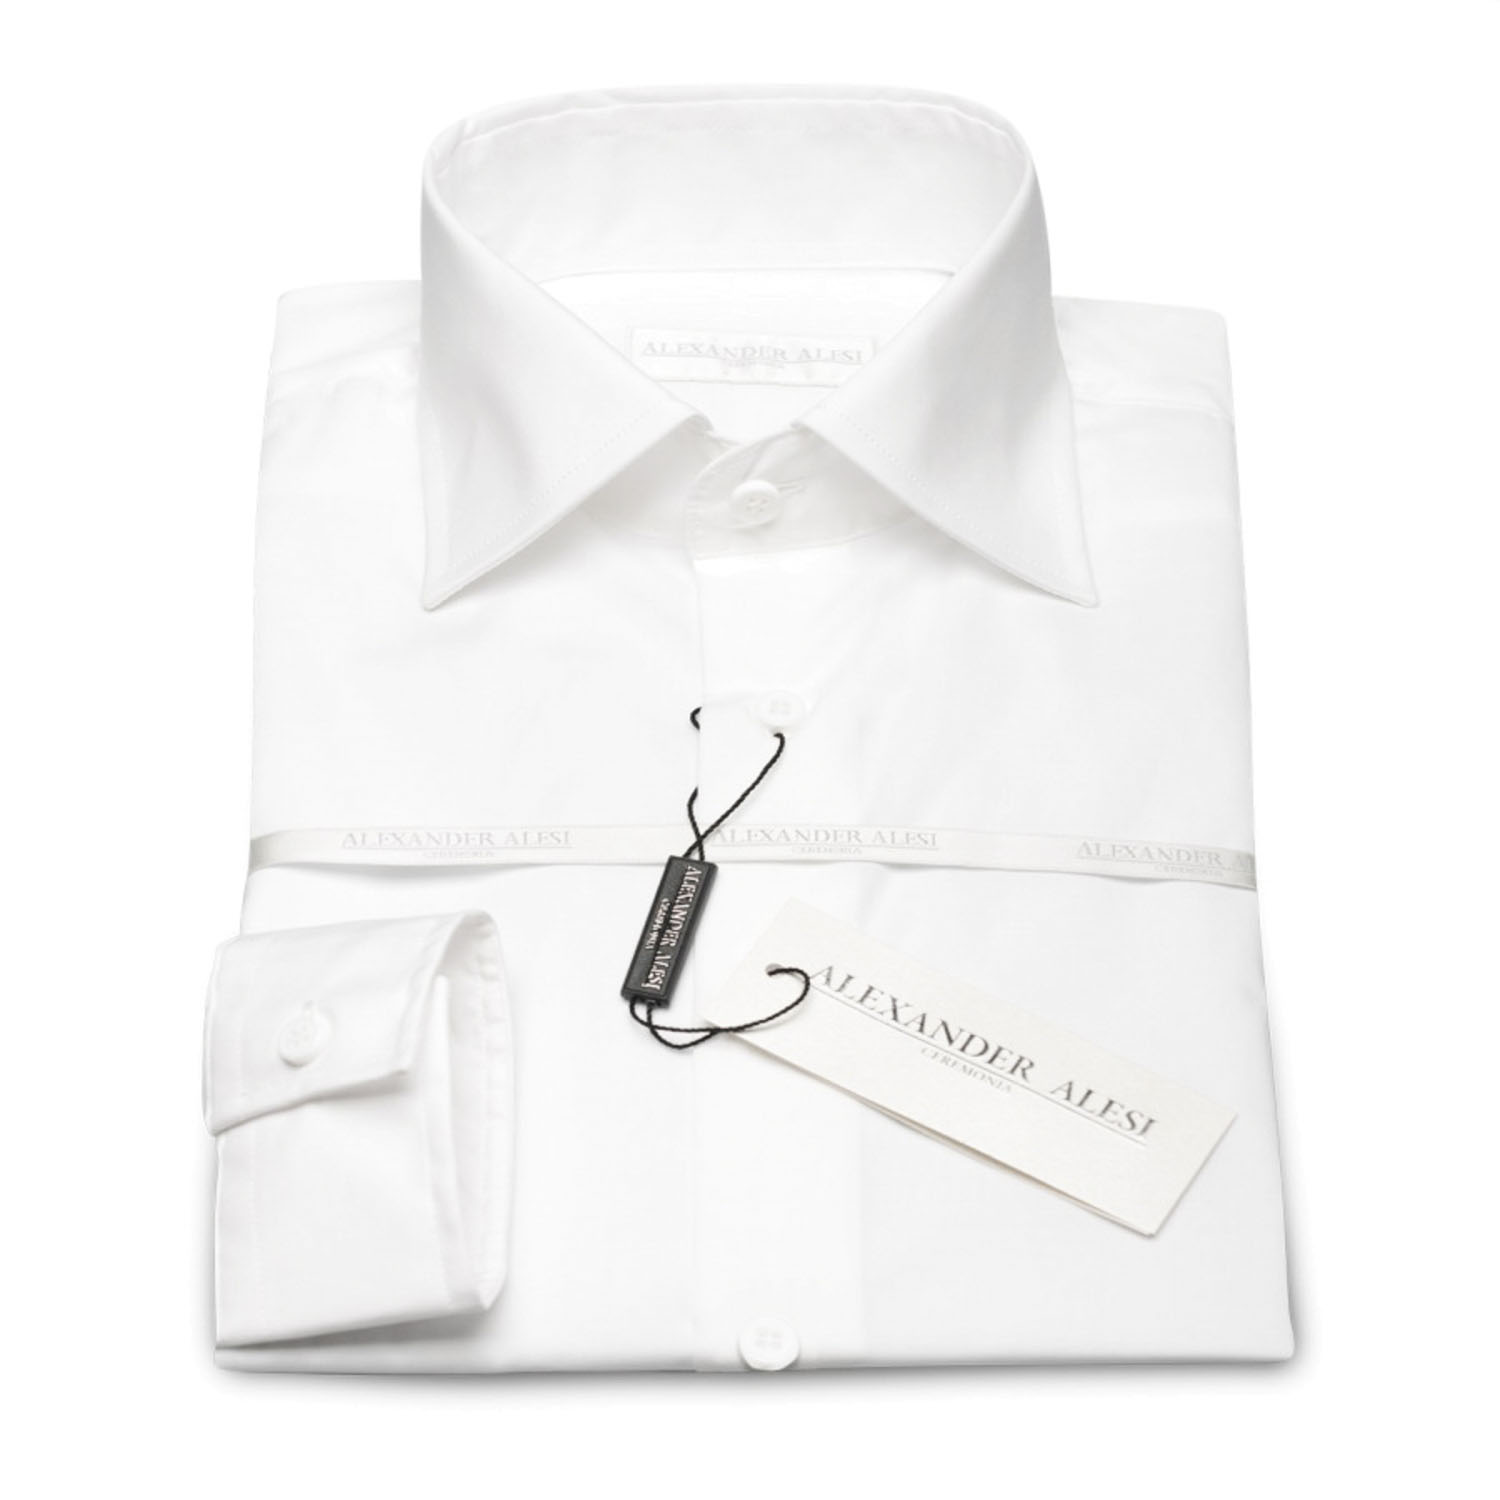 overhemd-wit-aa-white-stretch-71-shirt-019000279